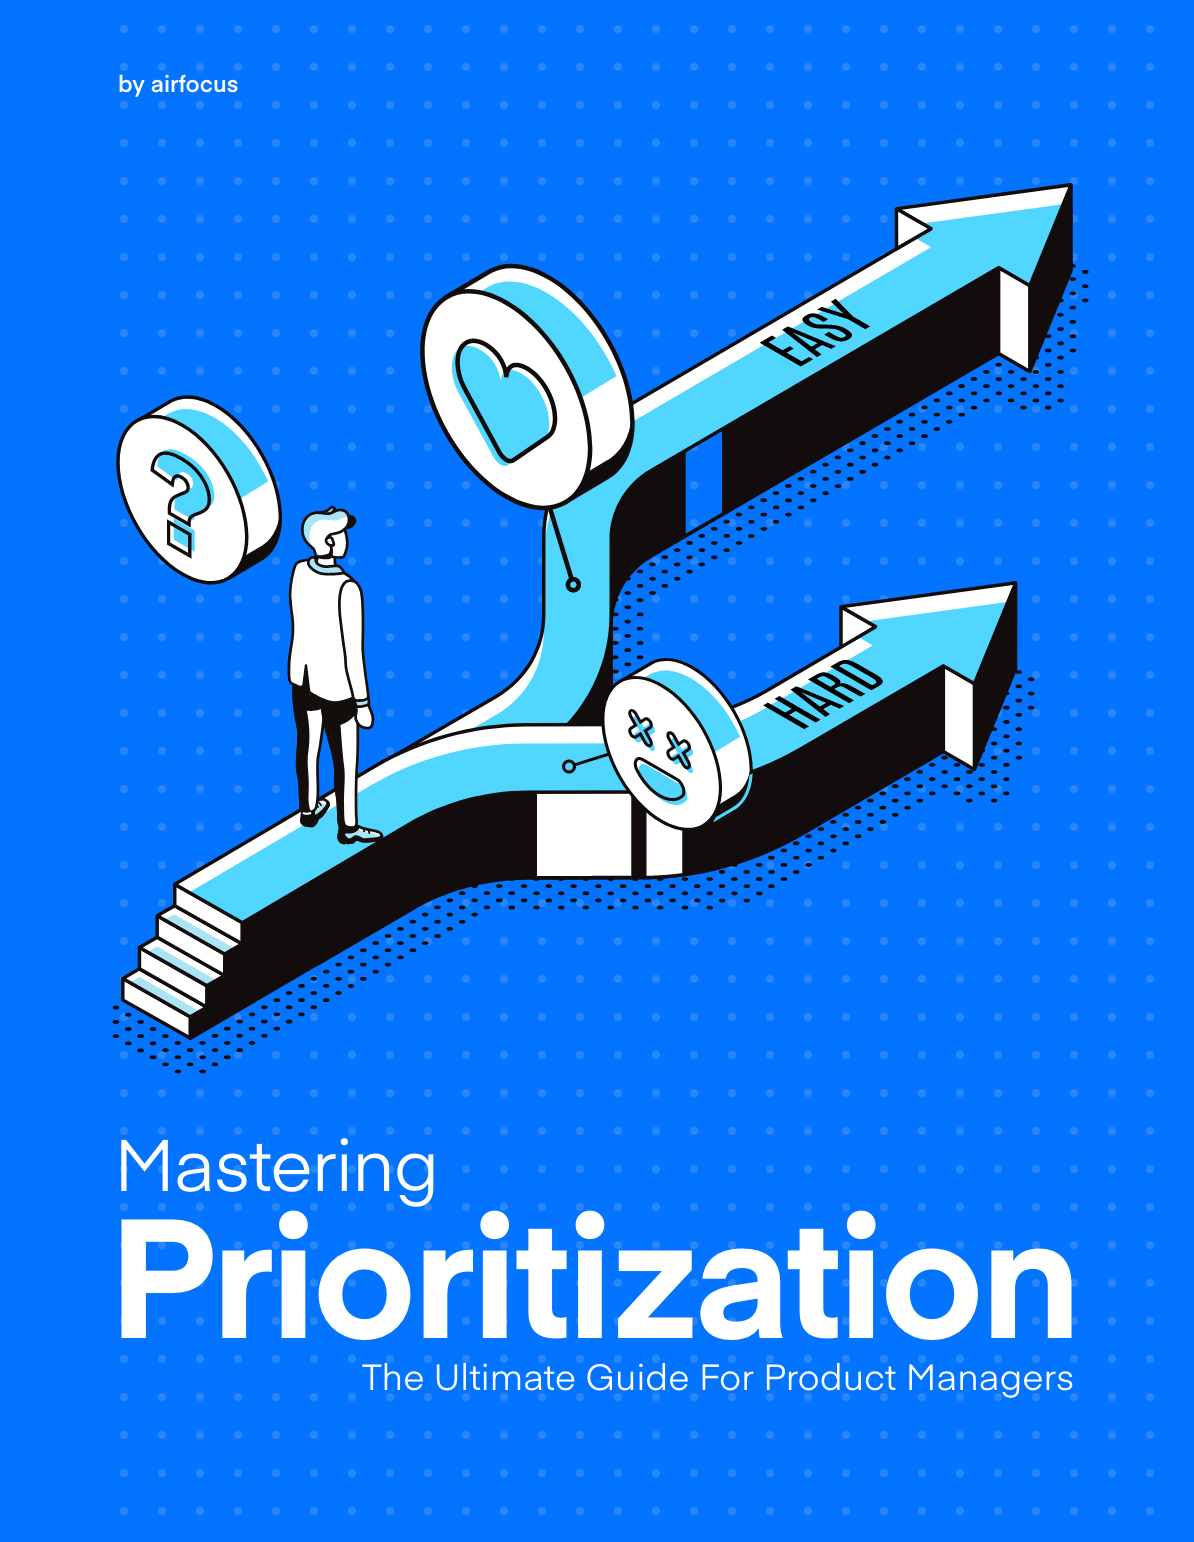 The ultimate guide to prioritization